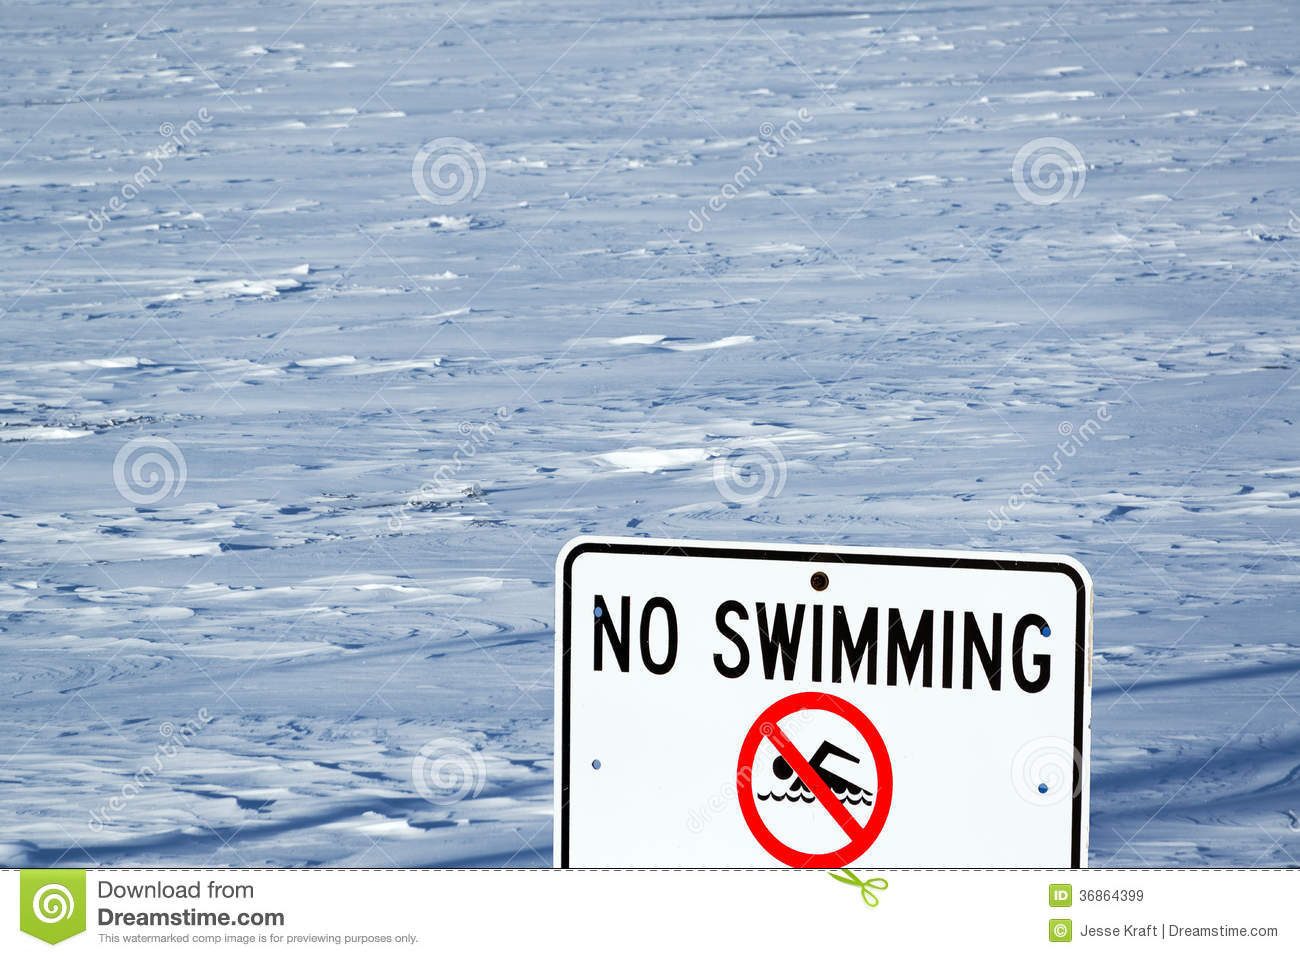 lake michigan no swimming sign royalty free stock images free lighthouse clipart black and white free lighthouse clipart downloads